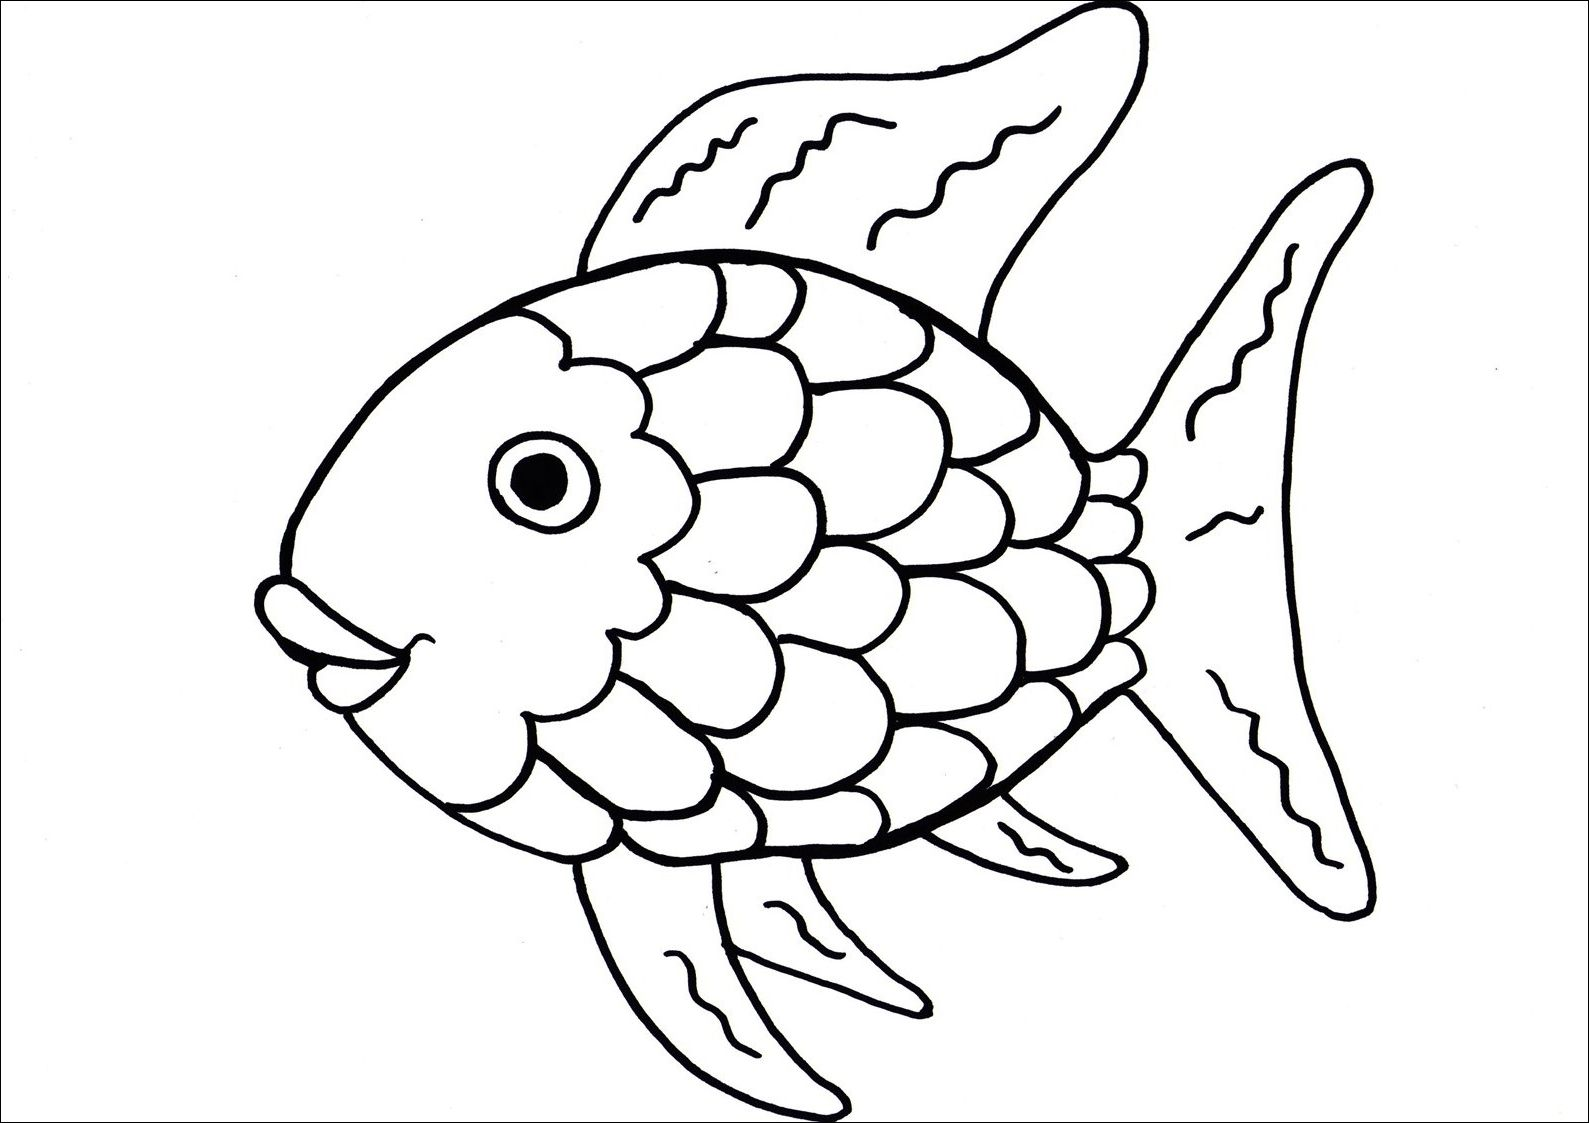 Pin By Tressa Andrews On Education Rainbow Fish Coloring Page Fish Coloring Page Rainbow Fish Template